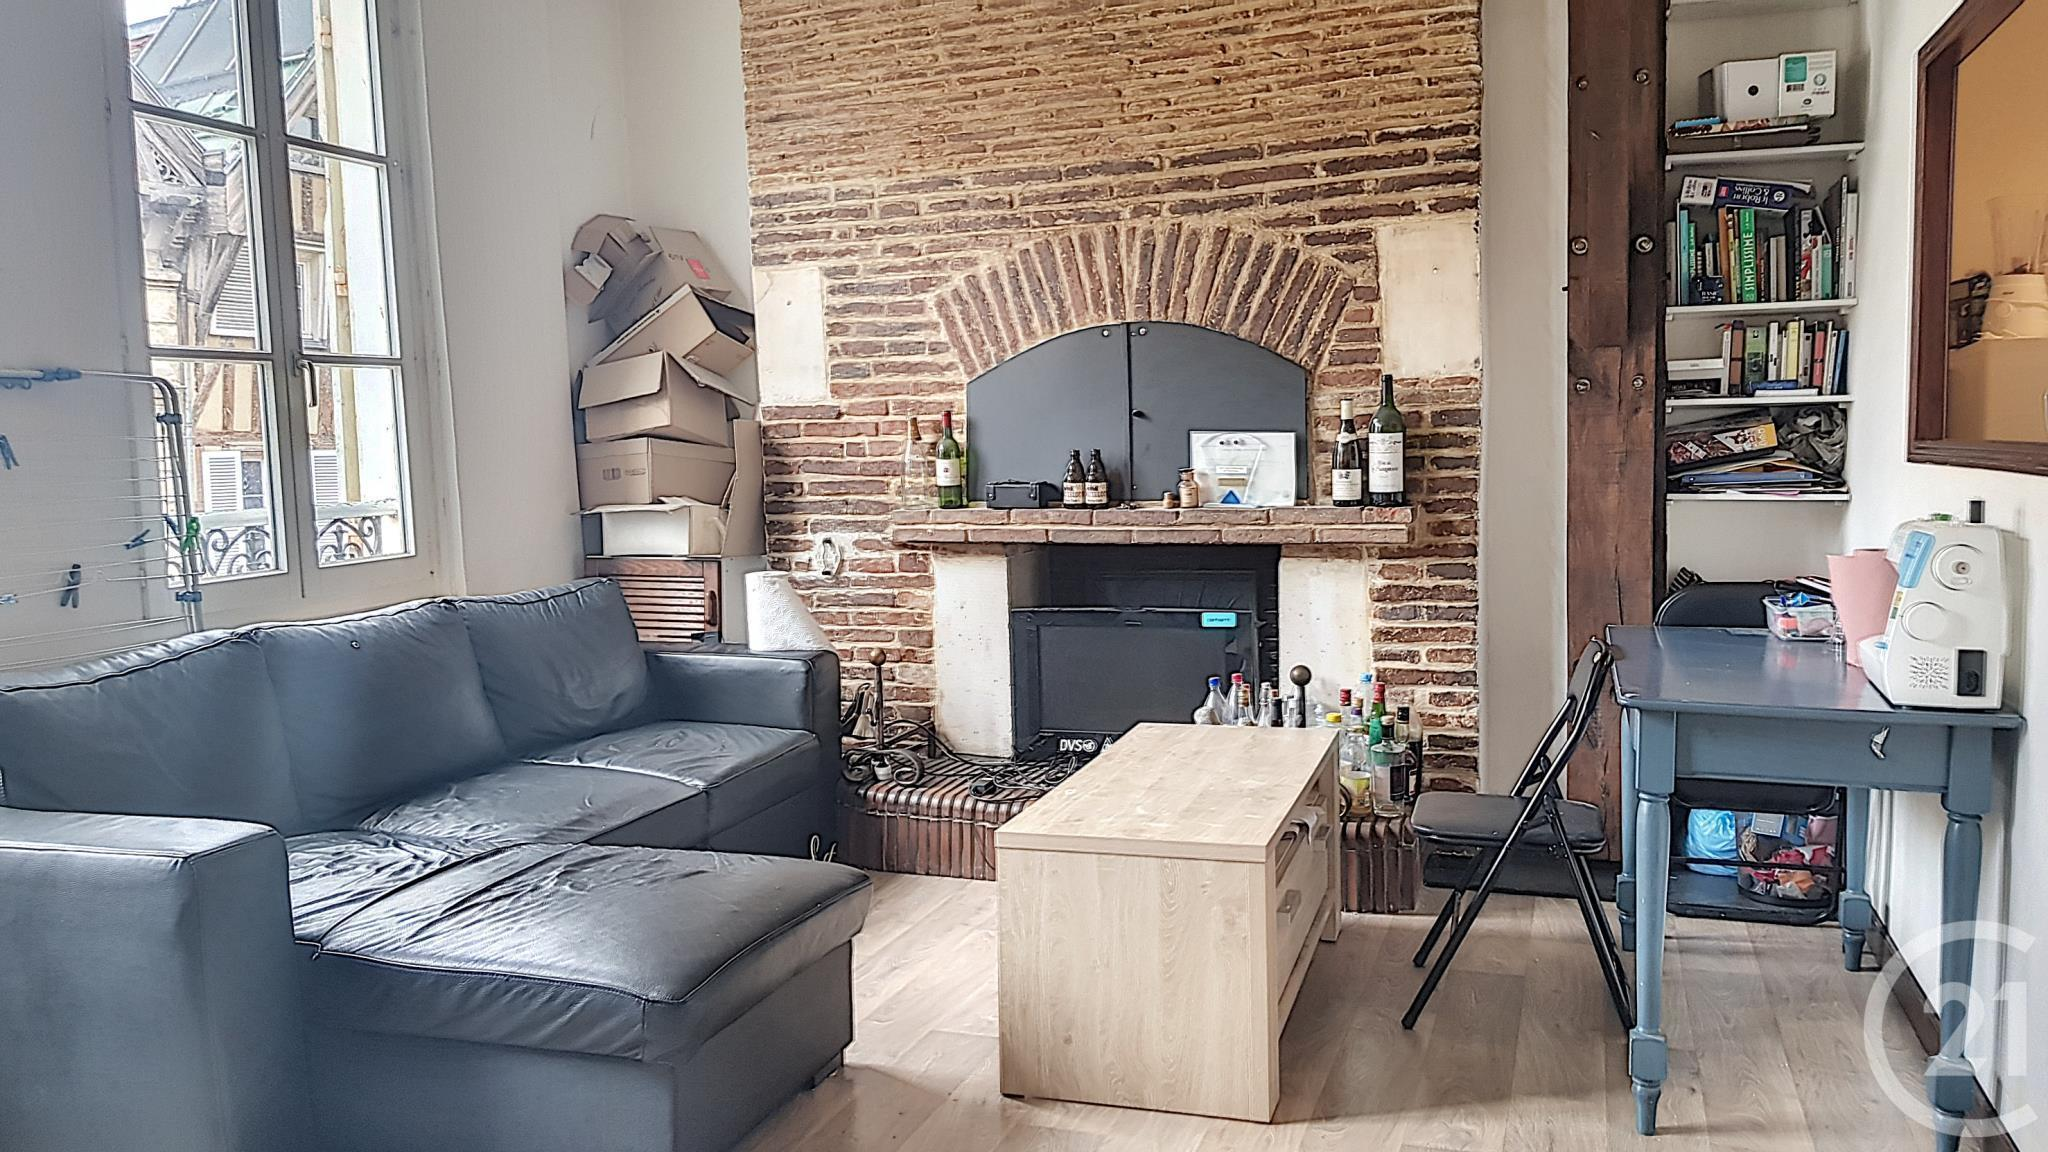 Appartement F3 à vendre - 4 pièces - 67 m2 - TROYES - 10 - CHAMPAGNE-ARDENNE